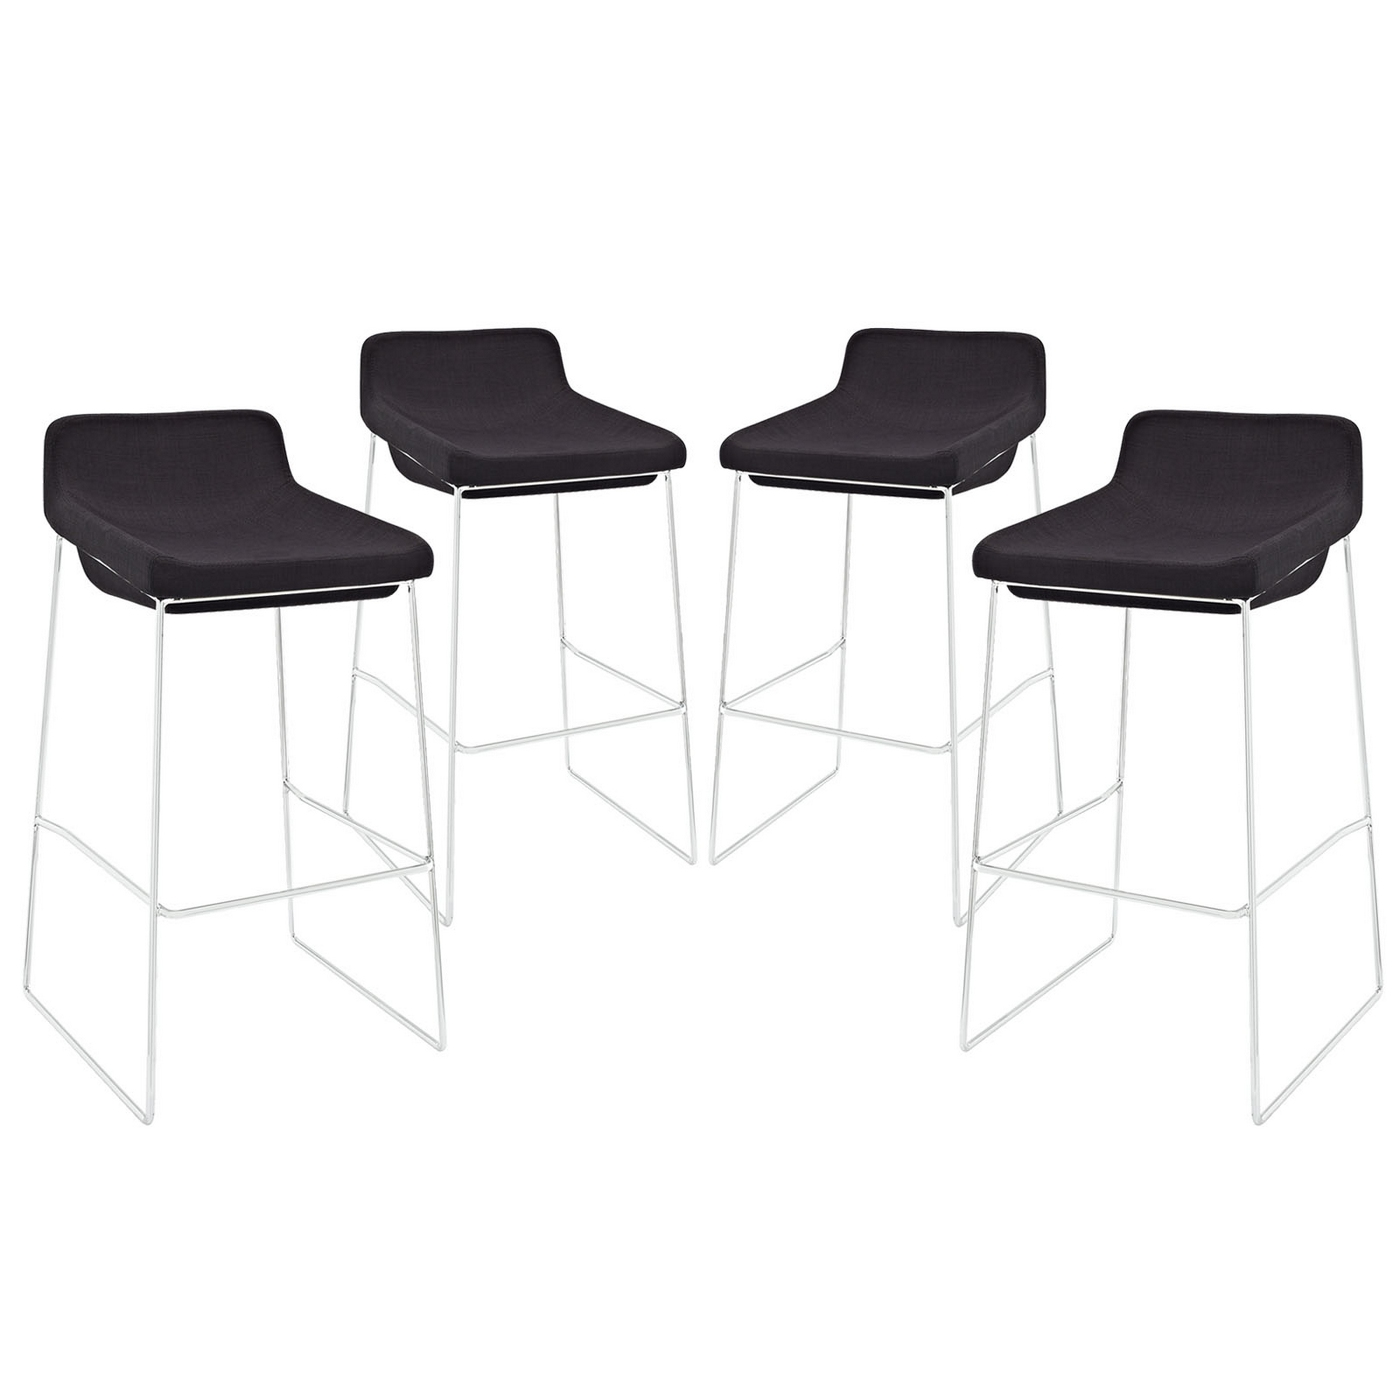 Set Of 4 Garner Contemporary Upholstered Bar Stool With  : set of 4 garner contemporary upholstered bar stool with chrome frame black 3 from shopfactorydirect.com size 1400 x 1400 jpeg 201kB